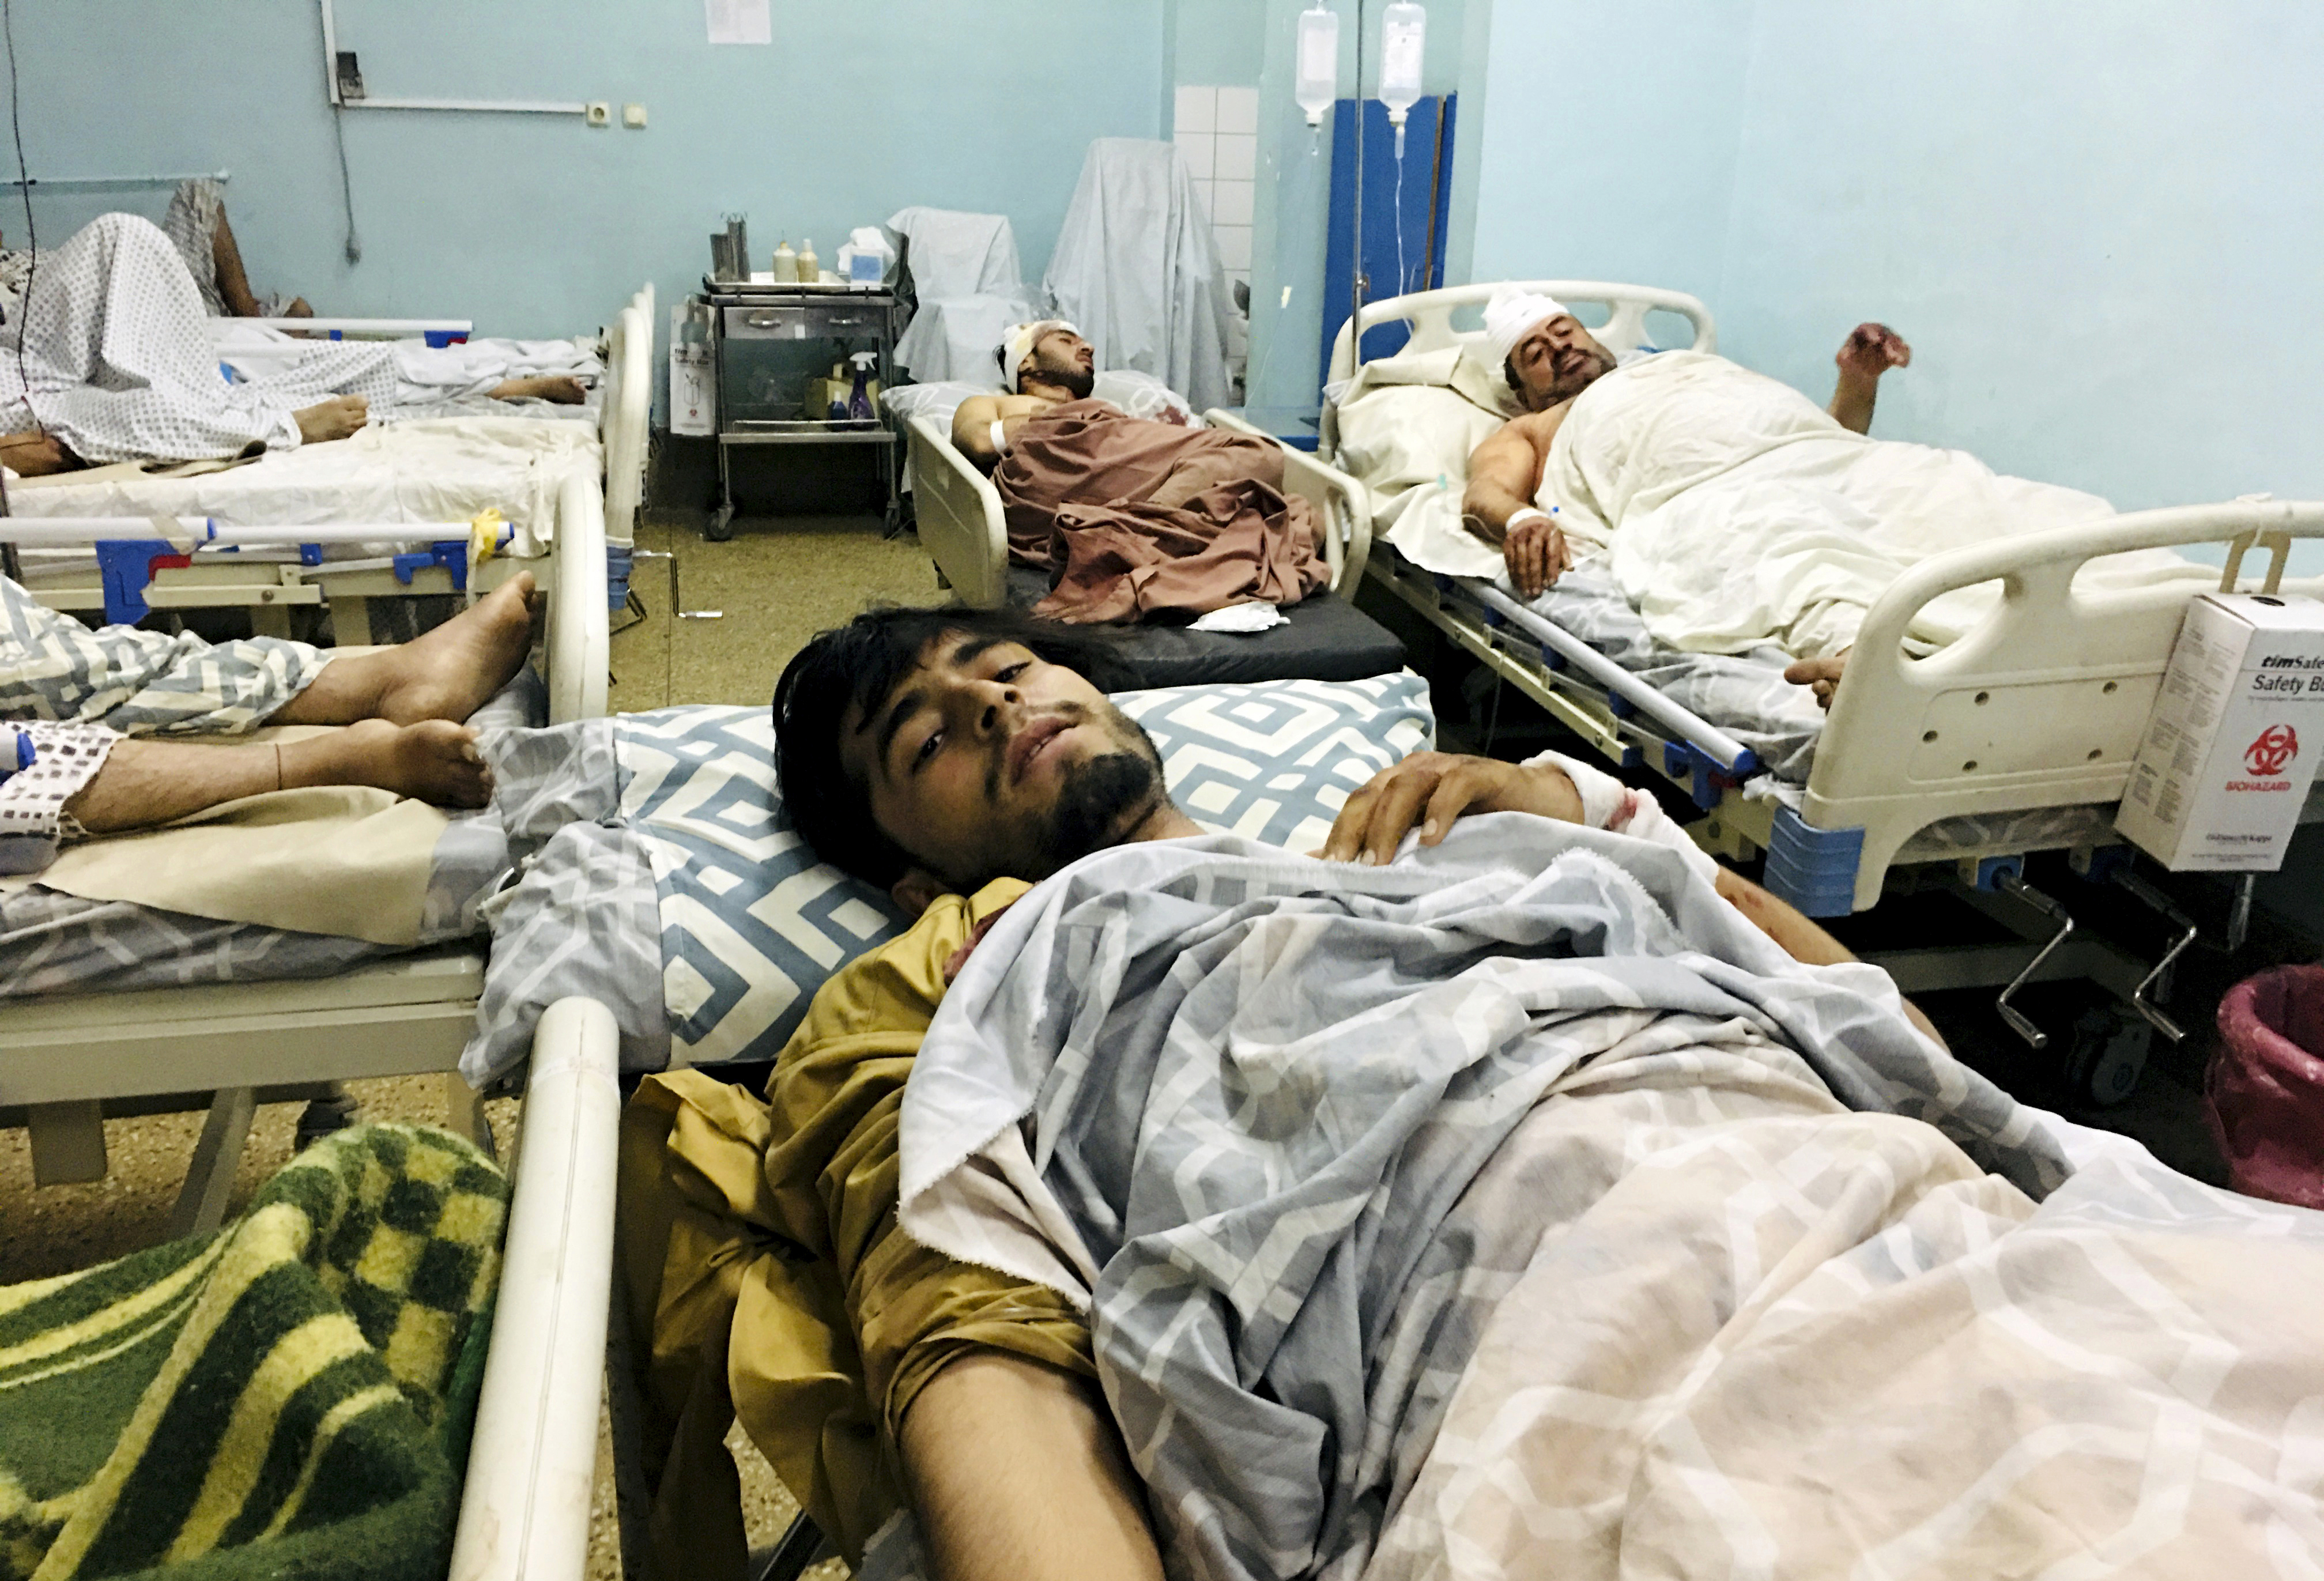 Wounded Afghans lie on a bed at a hospital after a deadly explosions outside the airport in Kabul, Afghanistan, Thursday, Aug. 26, 2021. Two suicide bombers and gunmen attacked crowds of Afghans flocking to Kabul's airport Thursday, transforming a scene of desperation into one of horror in the waning days of an airlift for those fleeing the Taliban takeover. The attacks killed at least 60 Afghans and 12 U.S. troops, Afghan and U.S. officials said. (AP Photo/Mohammad Asif Khan)